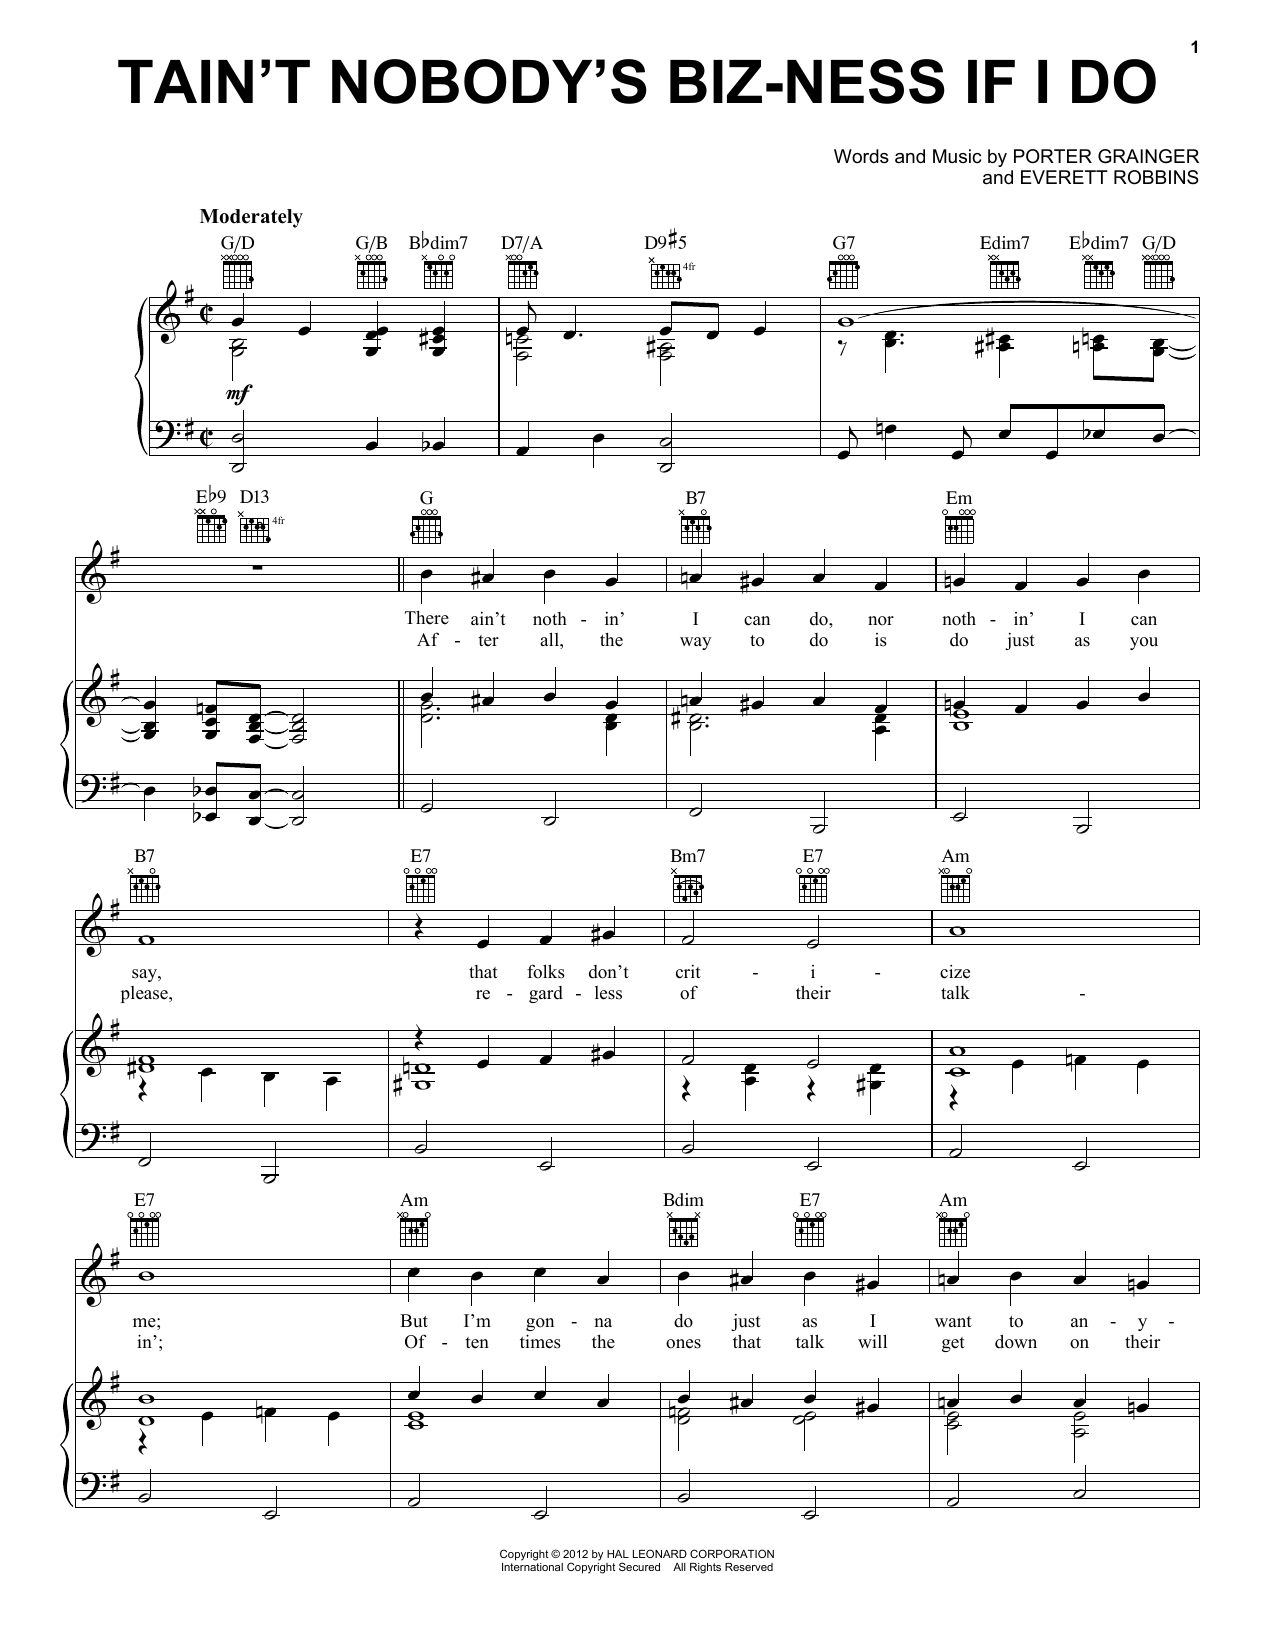 Tain't Nobody's Biz-ness If I Do sheet music for voice, piano or guitar by Porter Grainger